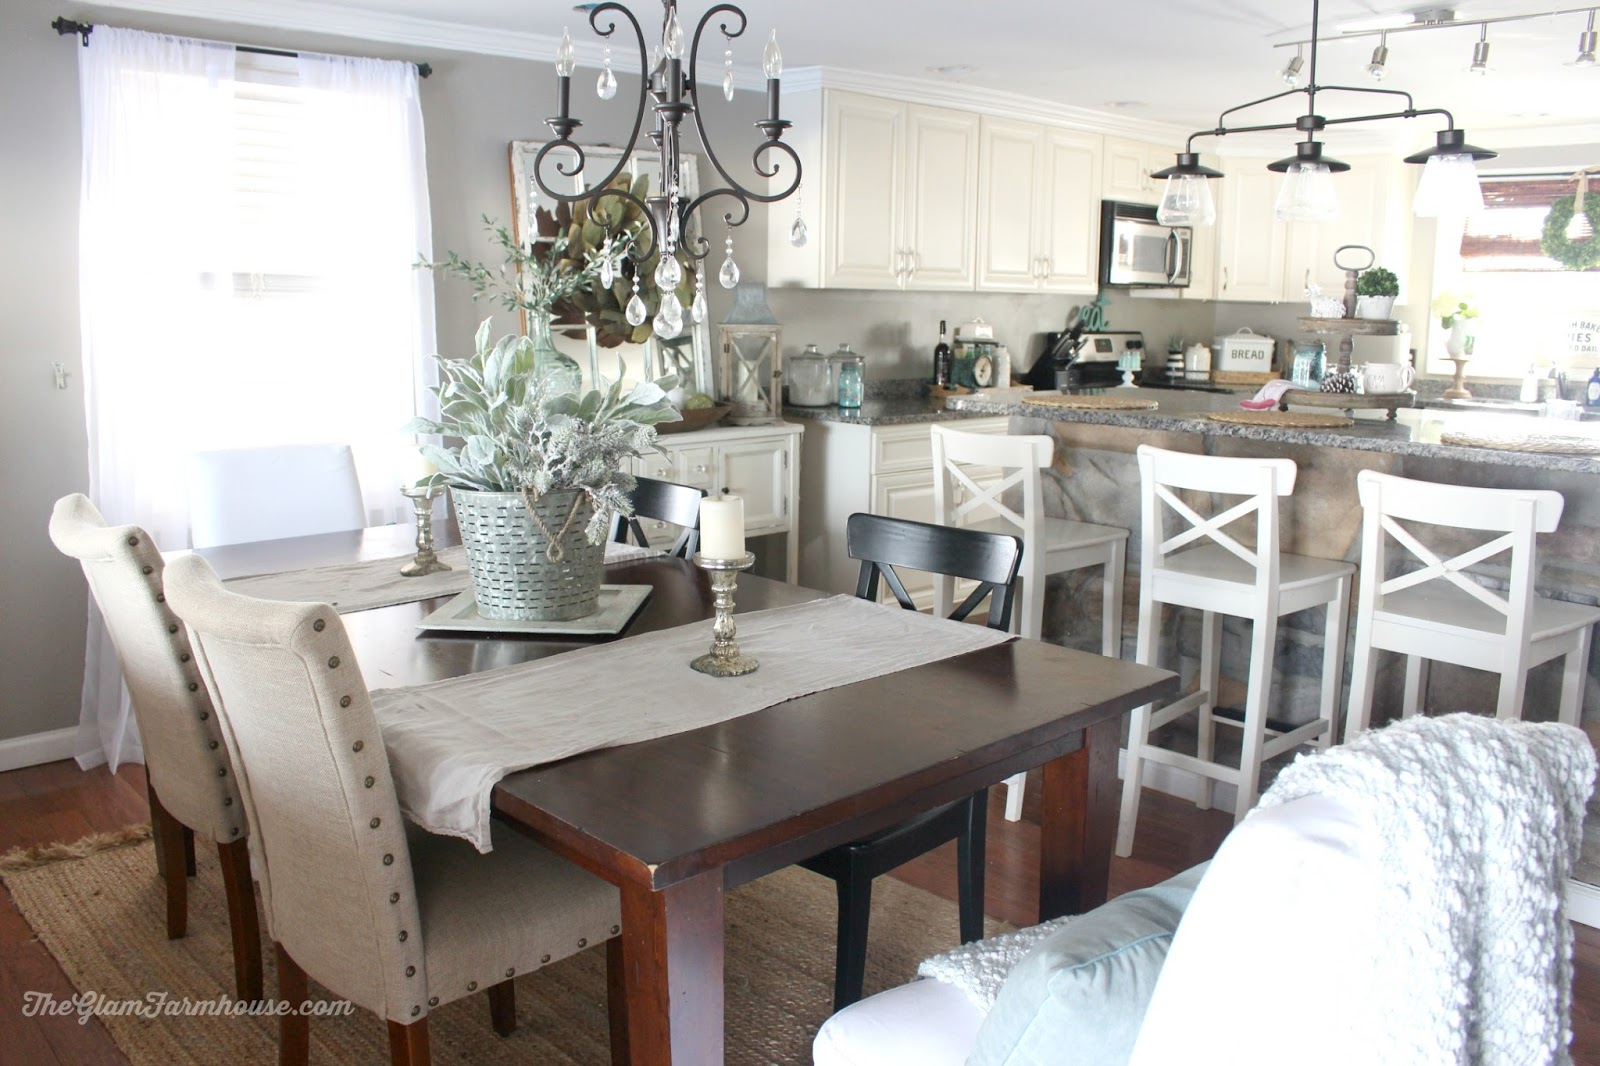 Rustic Glam Dining Room Tour with Before & Afters The Glam